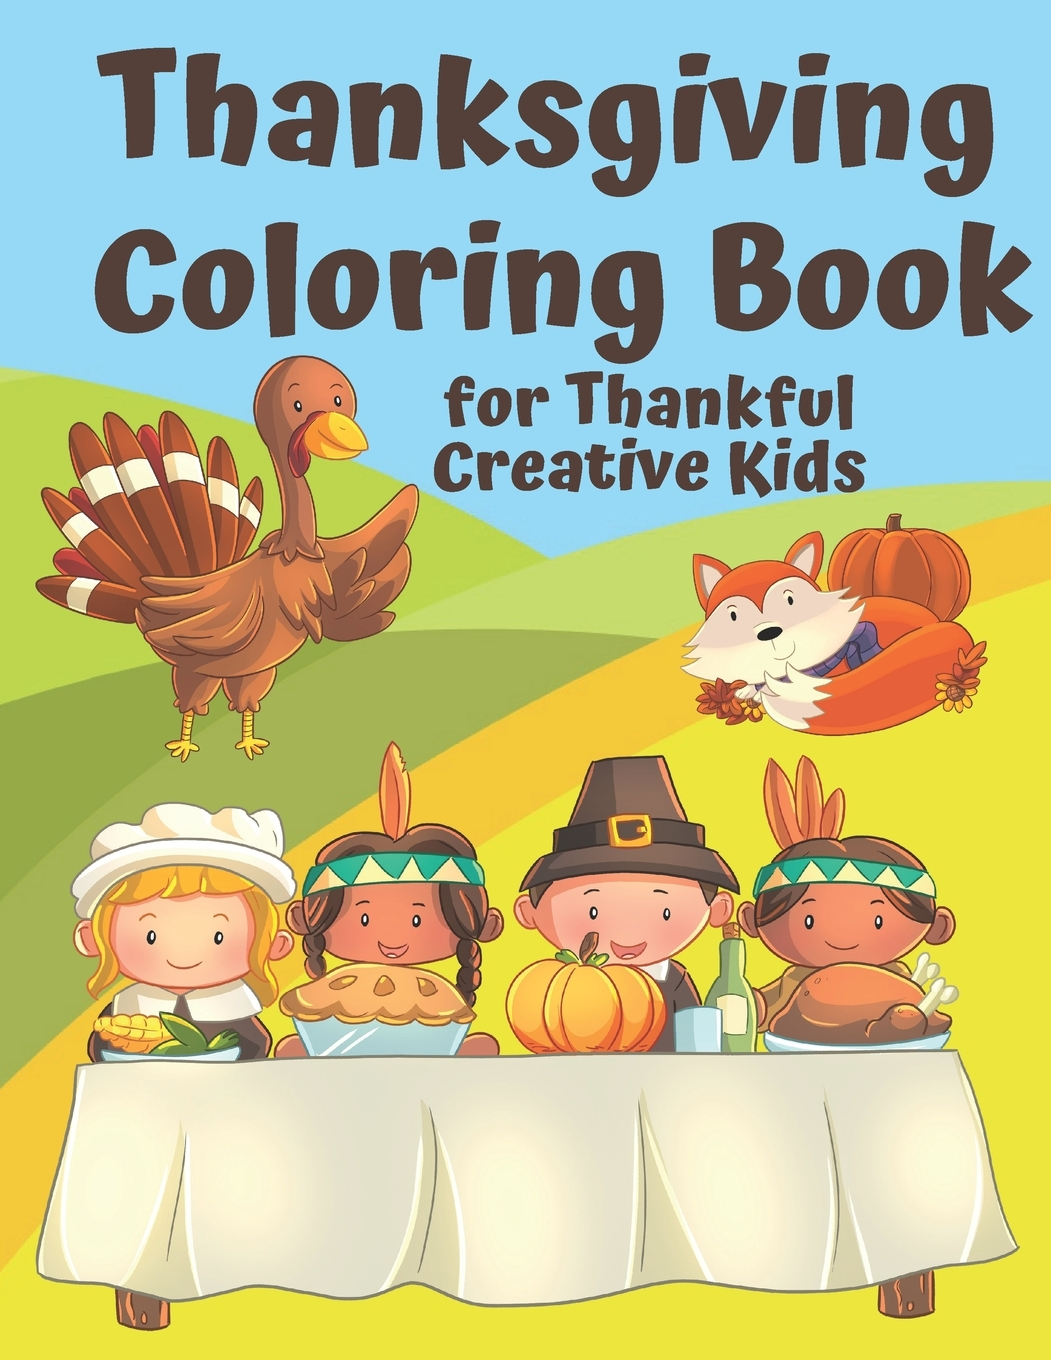 - Thanksgiving Holiday Coloring Books: Thanksgiving Coloring Book For  Thankful Kids: Thanksgiving Themed Activity Book To Keep Creative Kids  Occupied Over The Thanksgiving Holidays (Paperback) - Walmart.com -  Walmart.com